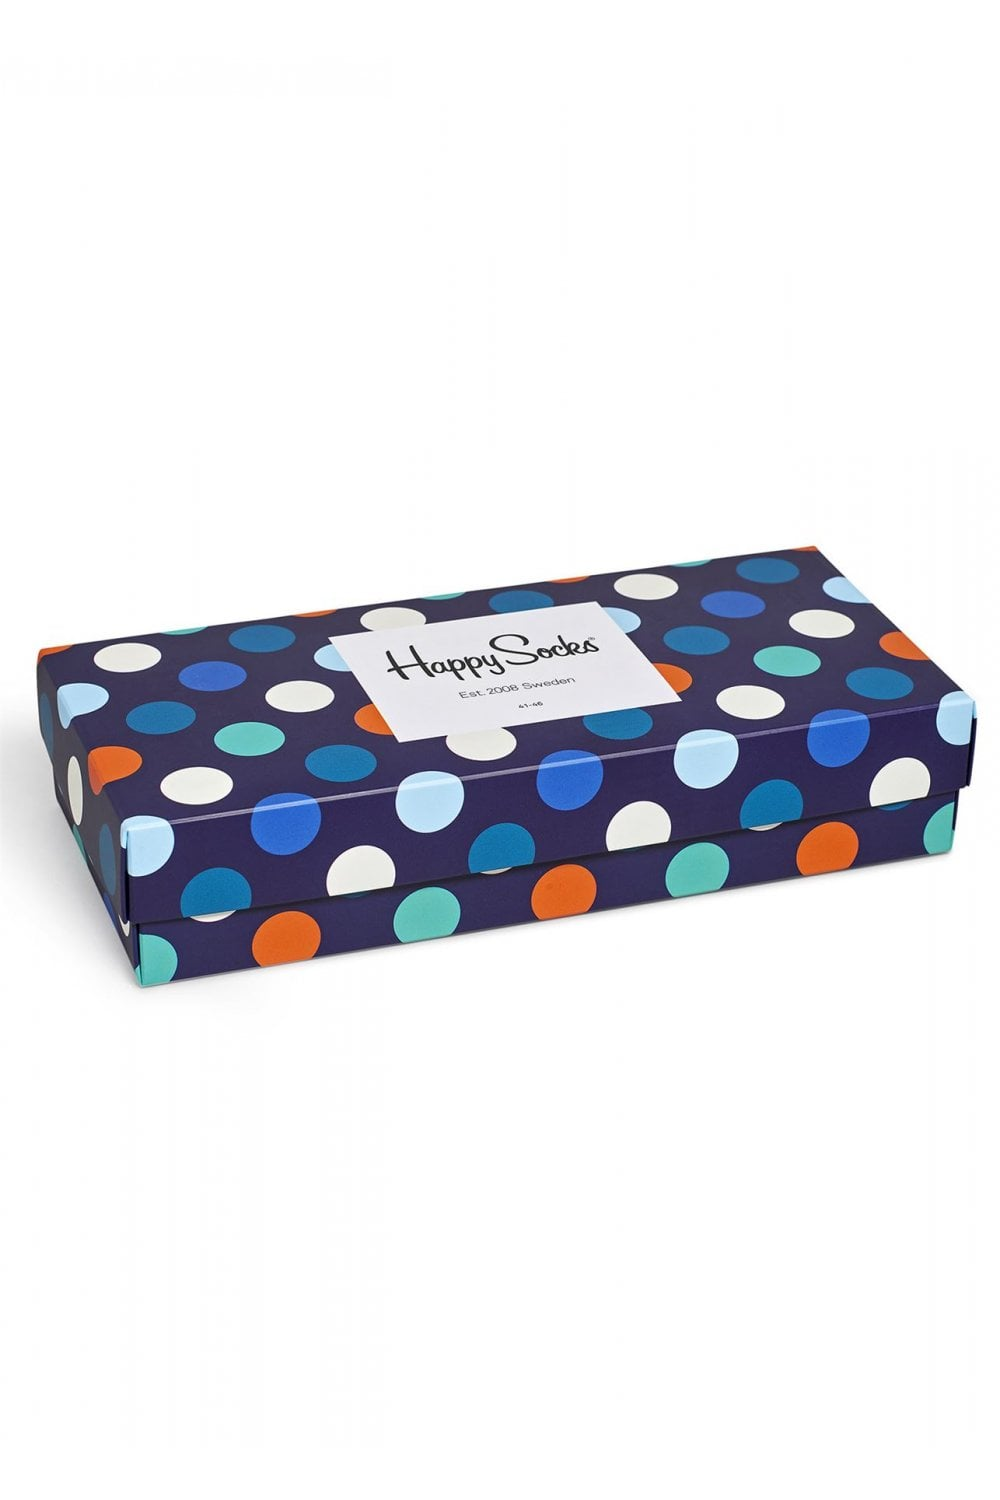 2a225ea2aae0 Happy Socks Mix Gift Box - 4 Pack - Socks from Potters of Buxton UK